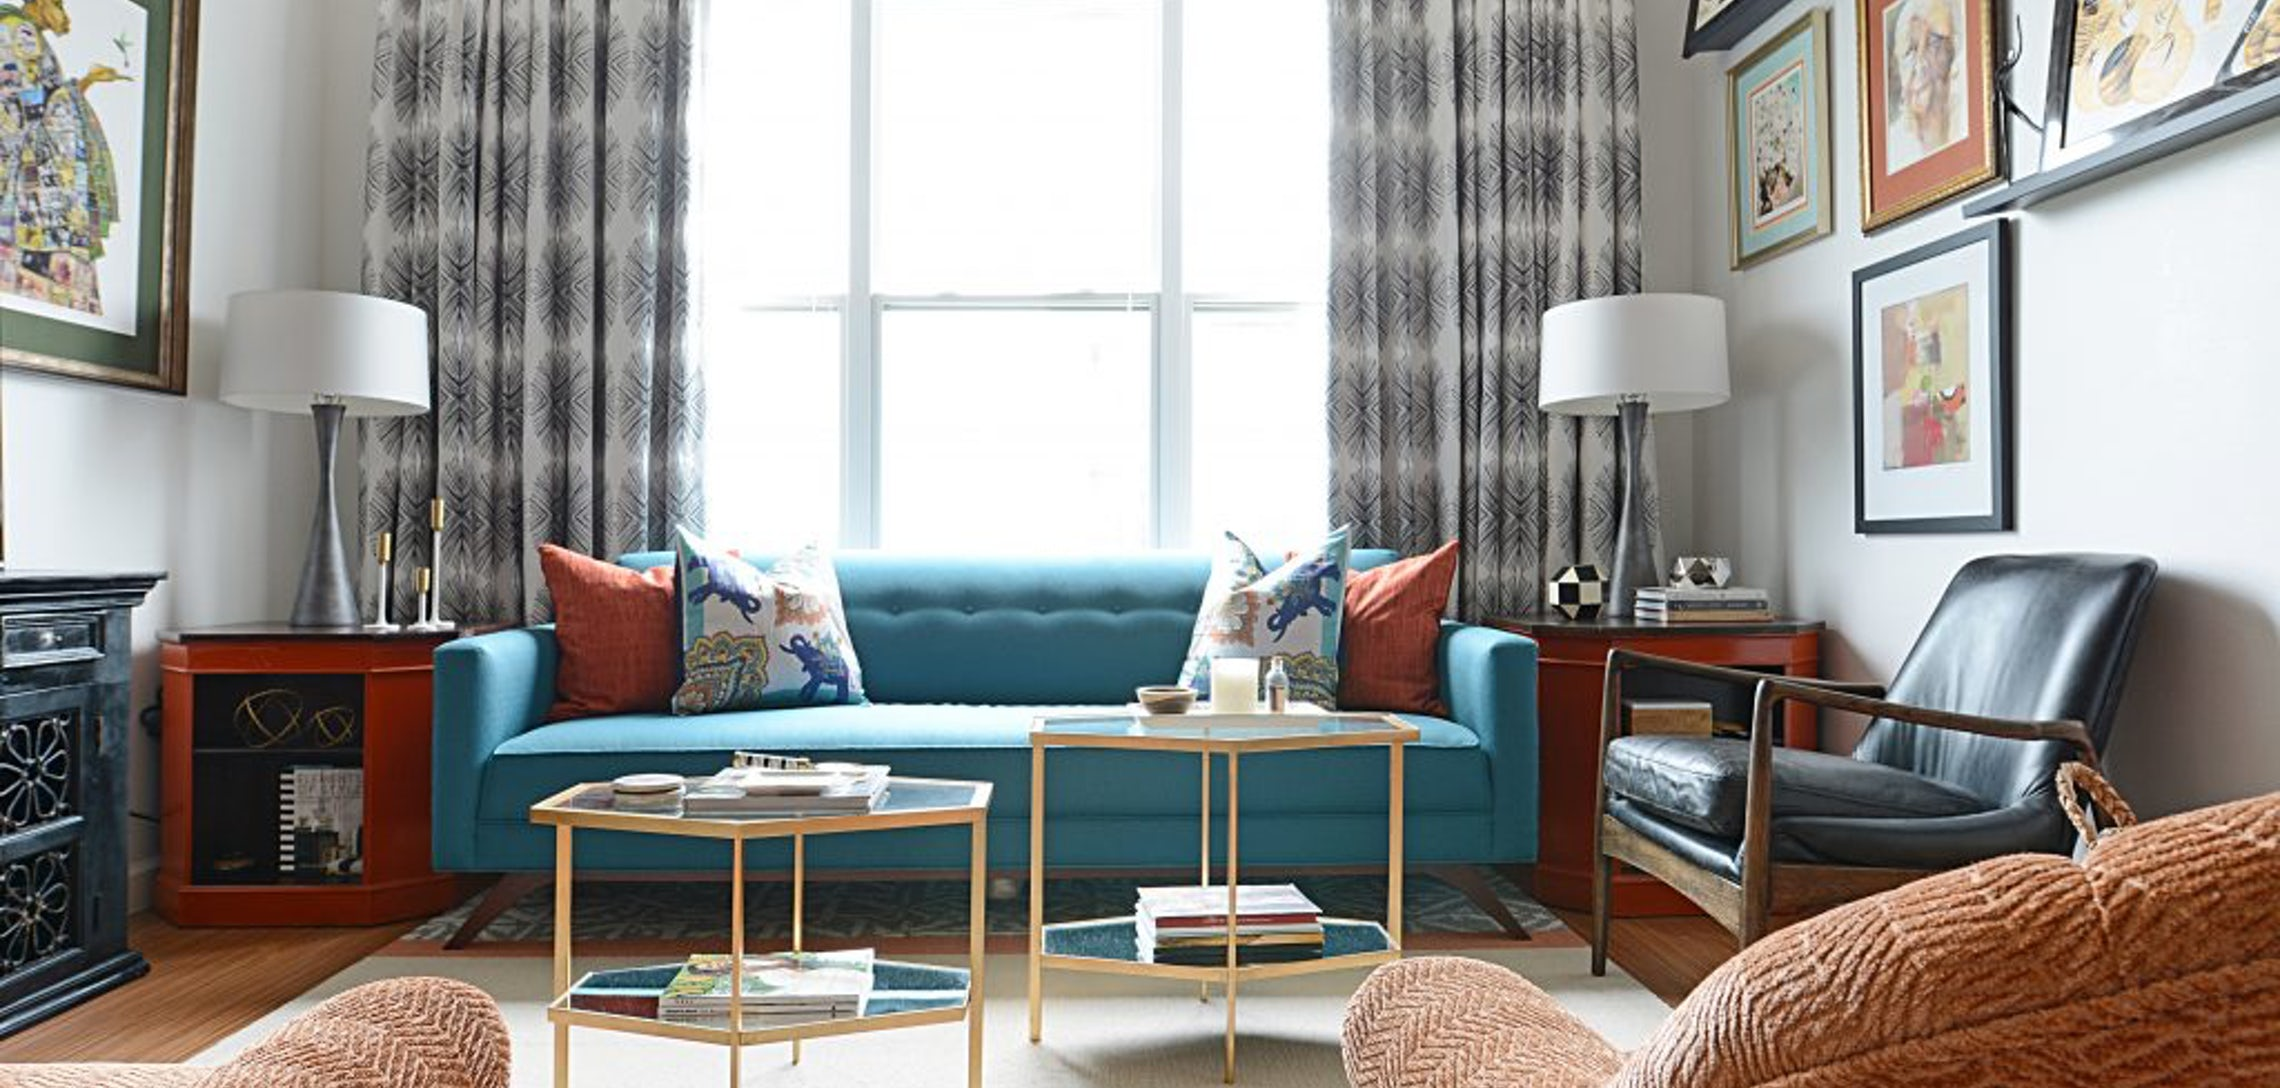 Designer tip: Arianne Bellizaire on small space planning